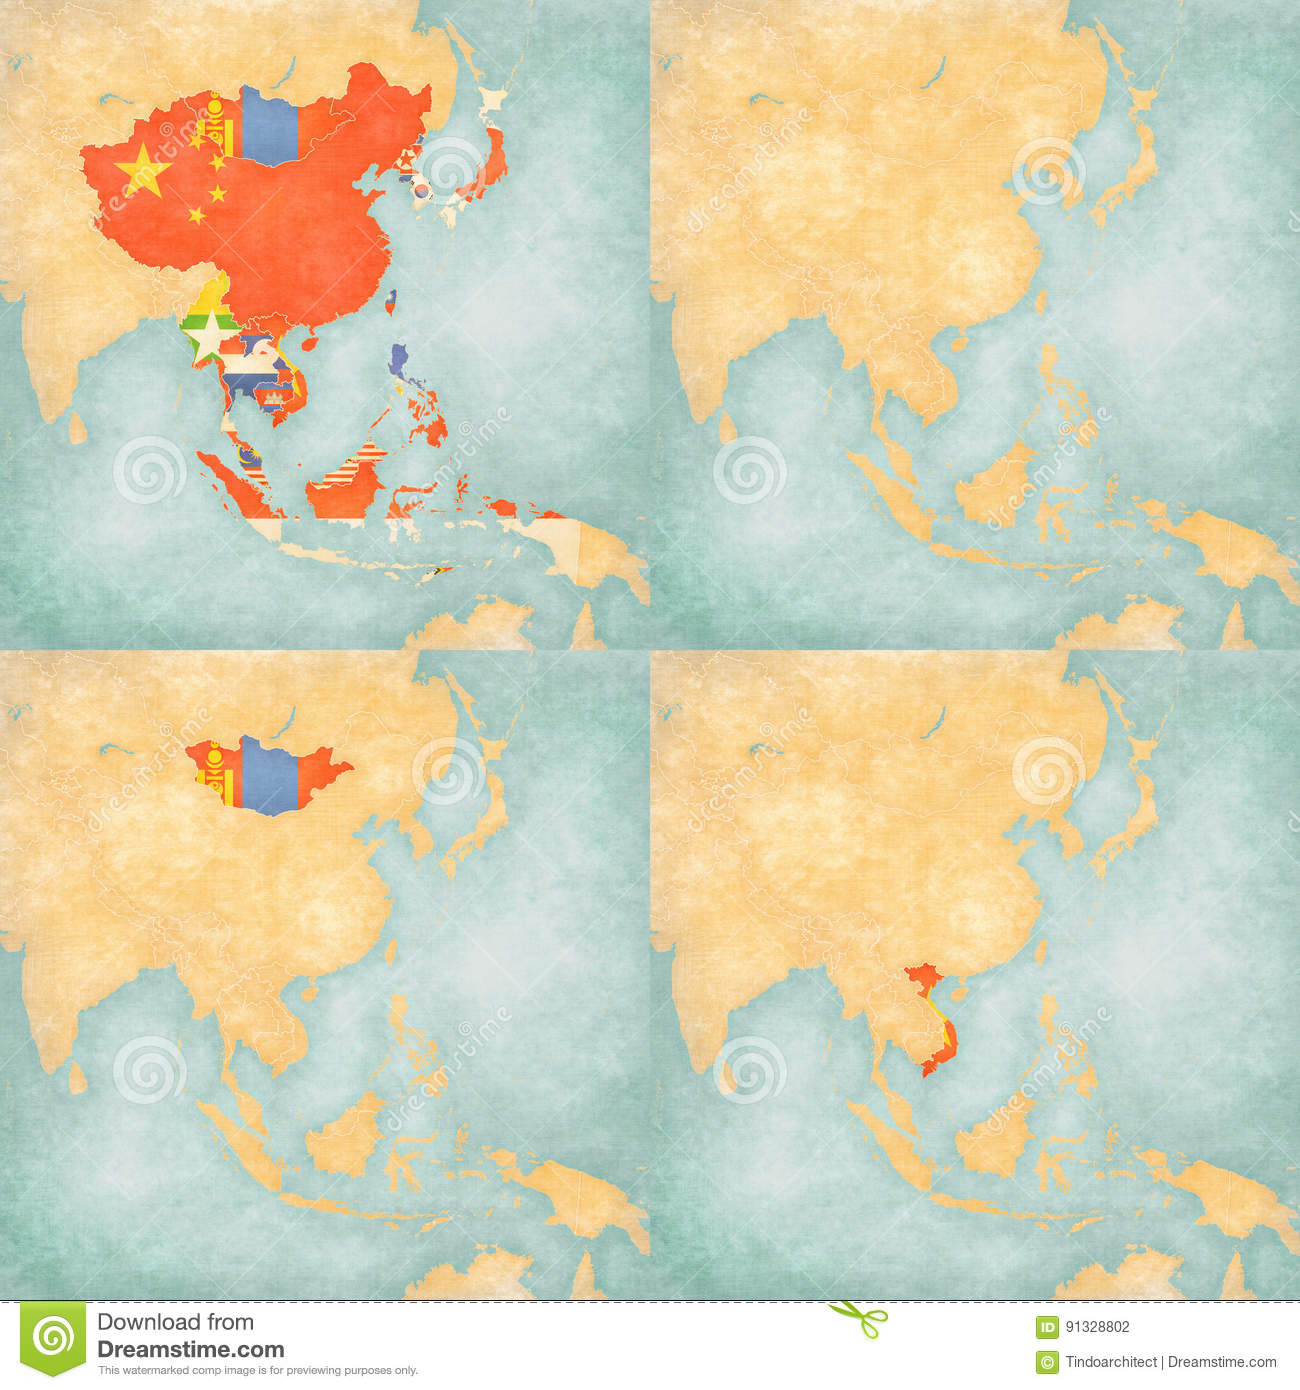 Blank Map Of East And Southeast Asia.Map Of East Asia Blank Map All Countries Mongolia And Vietnam